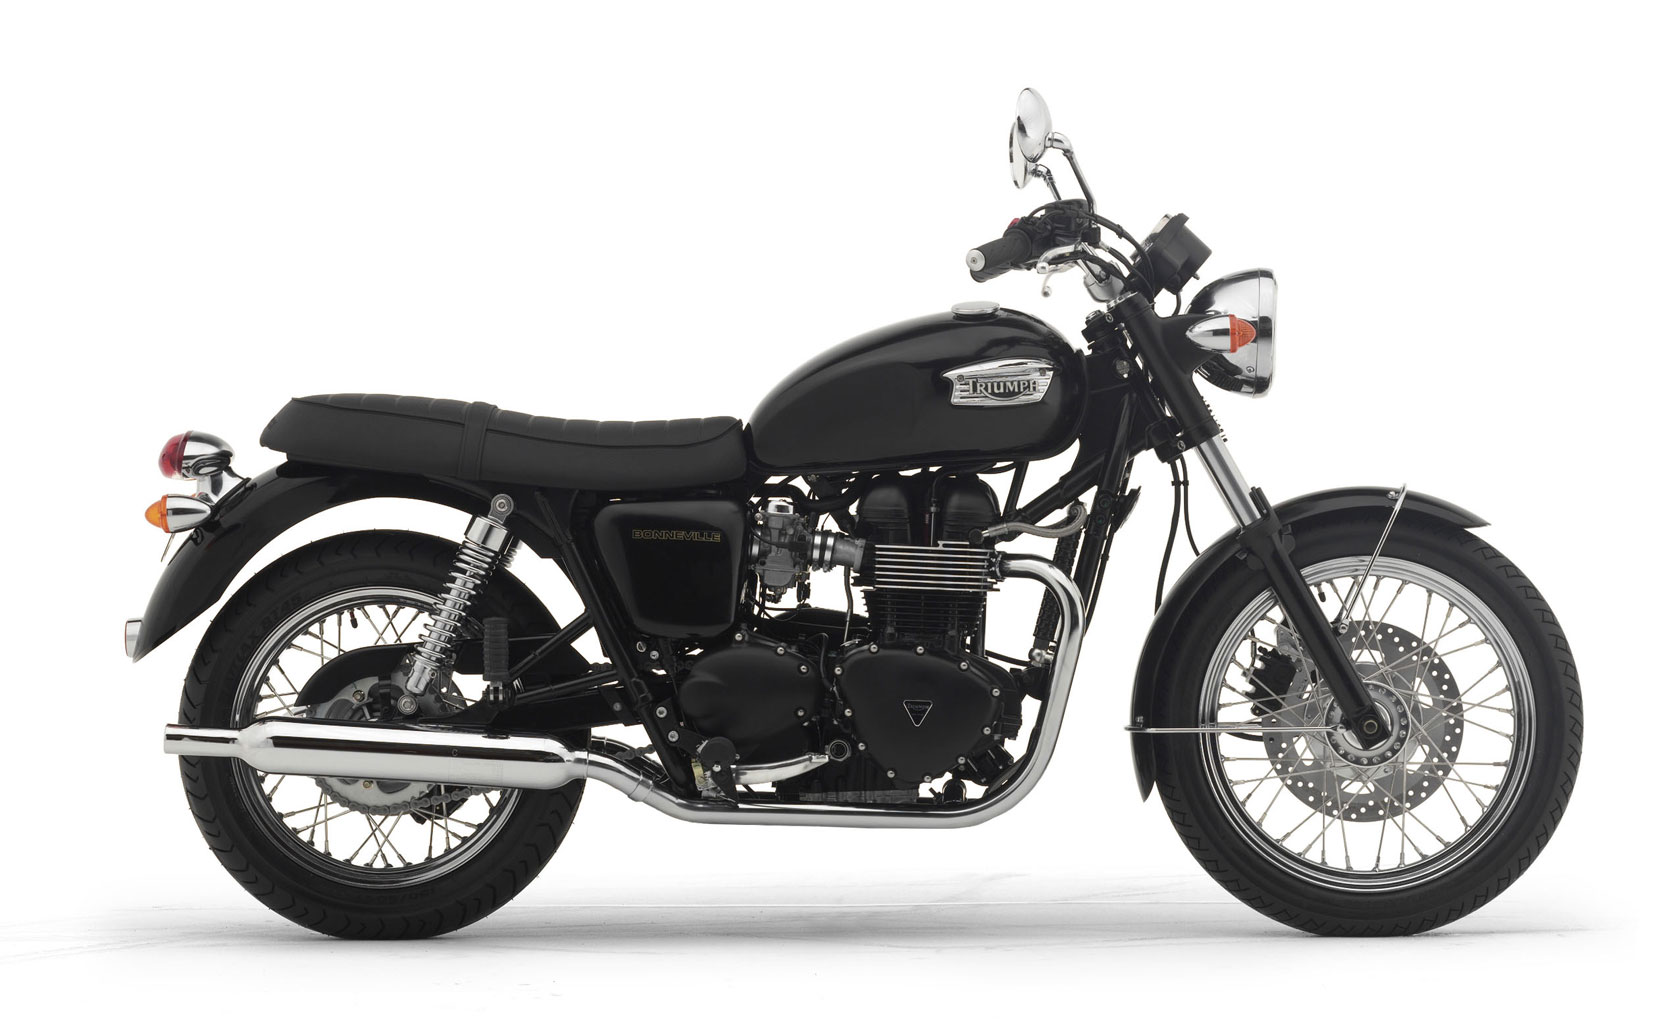 2005 triumph bonneville. Black Bedroom Furniture Sets. Home Design Ideas